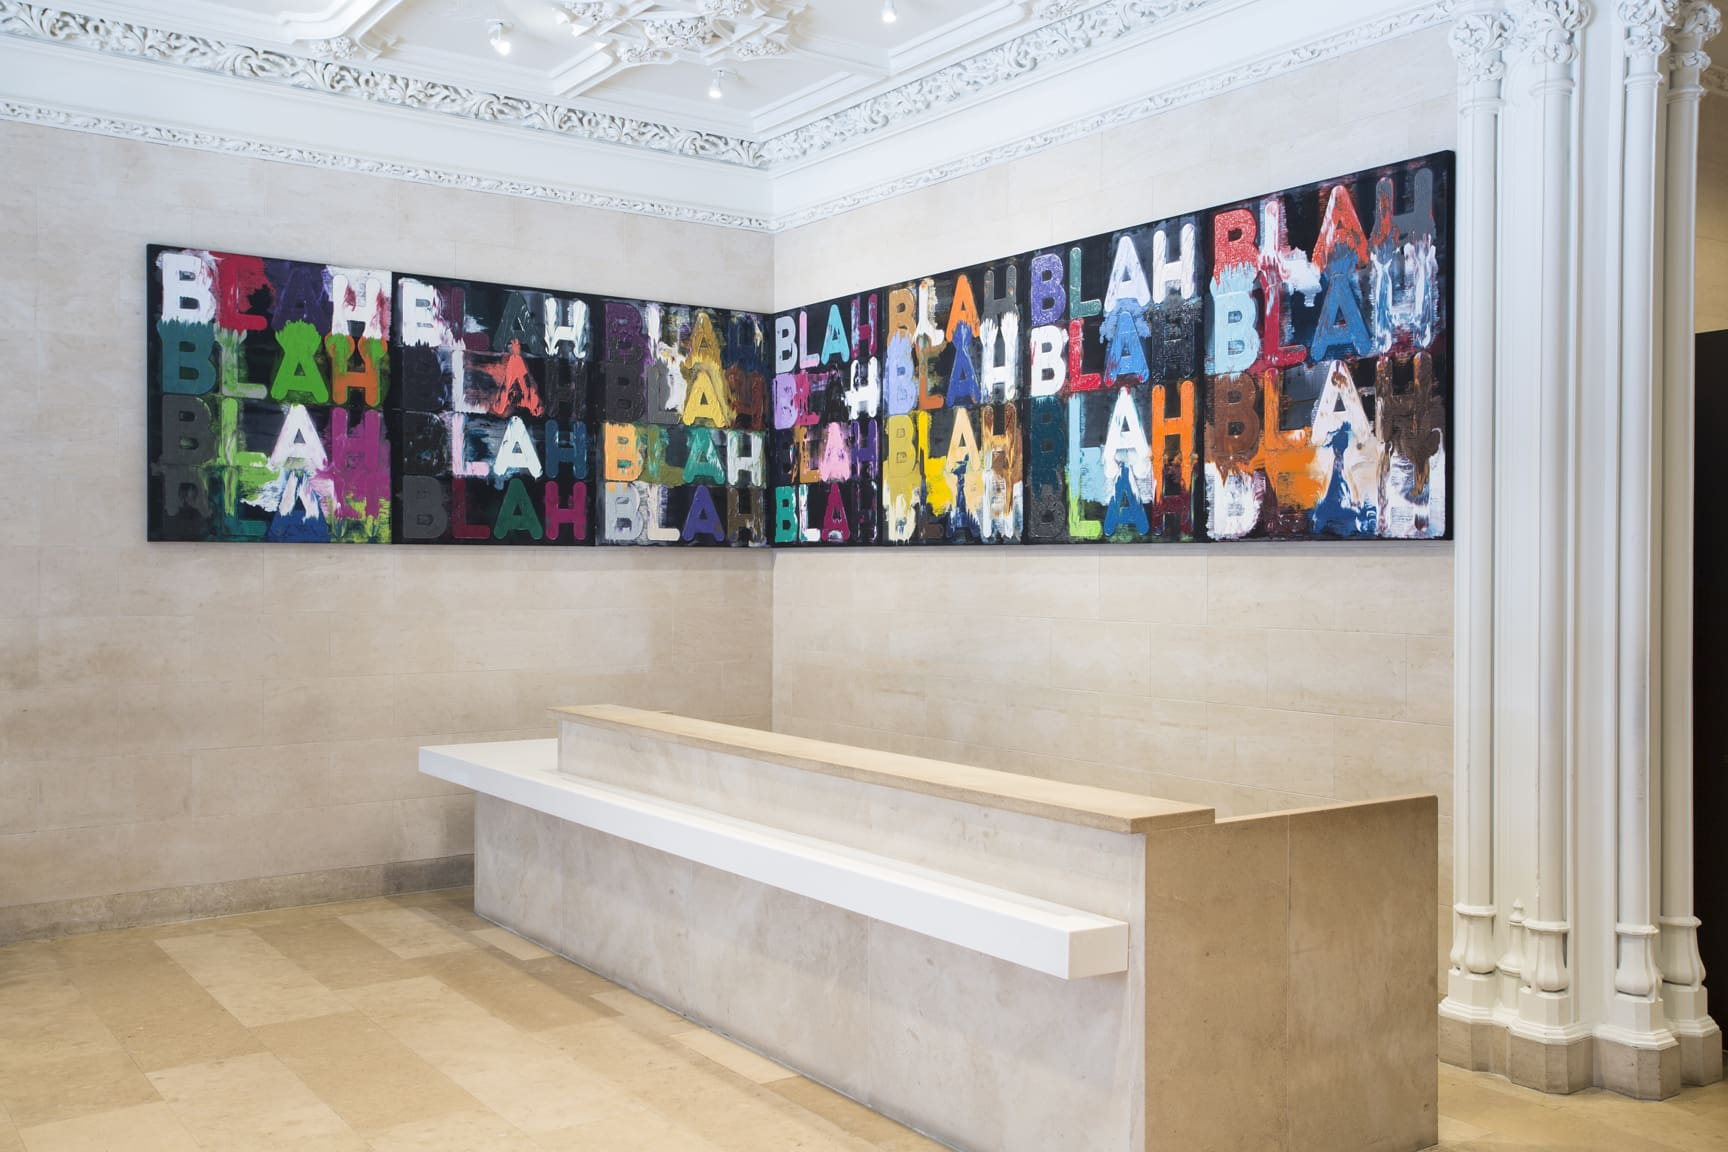 Large-Scale Painting by Mel Bochner Created for the Jewish Museum's Lobby